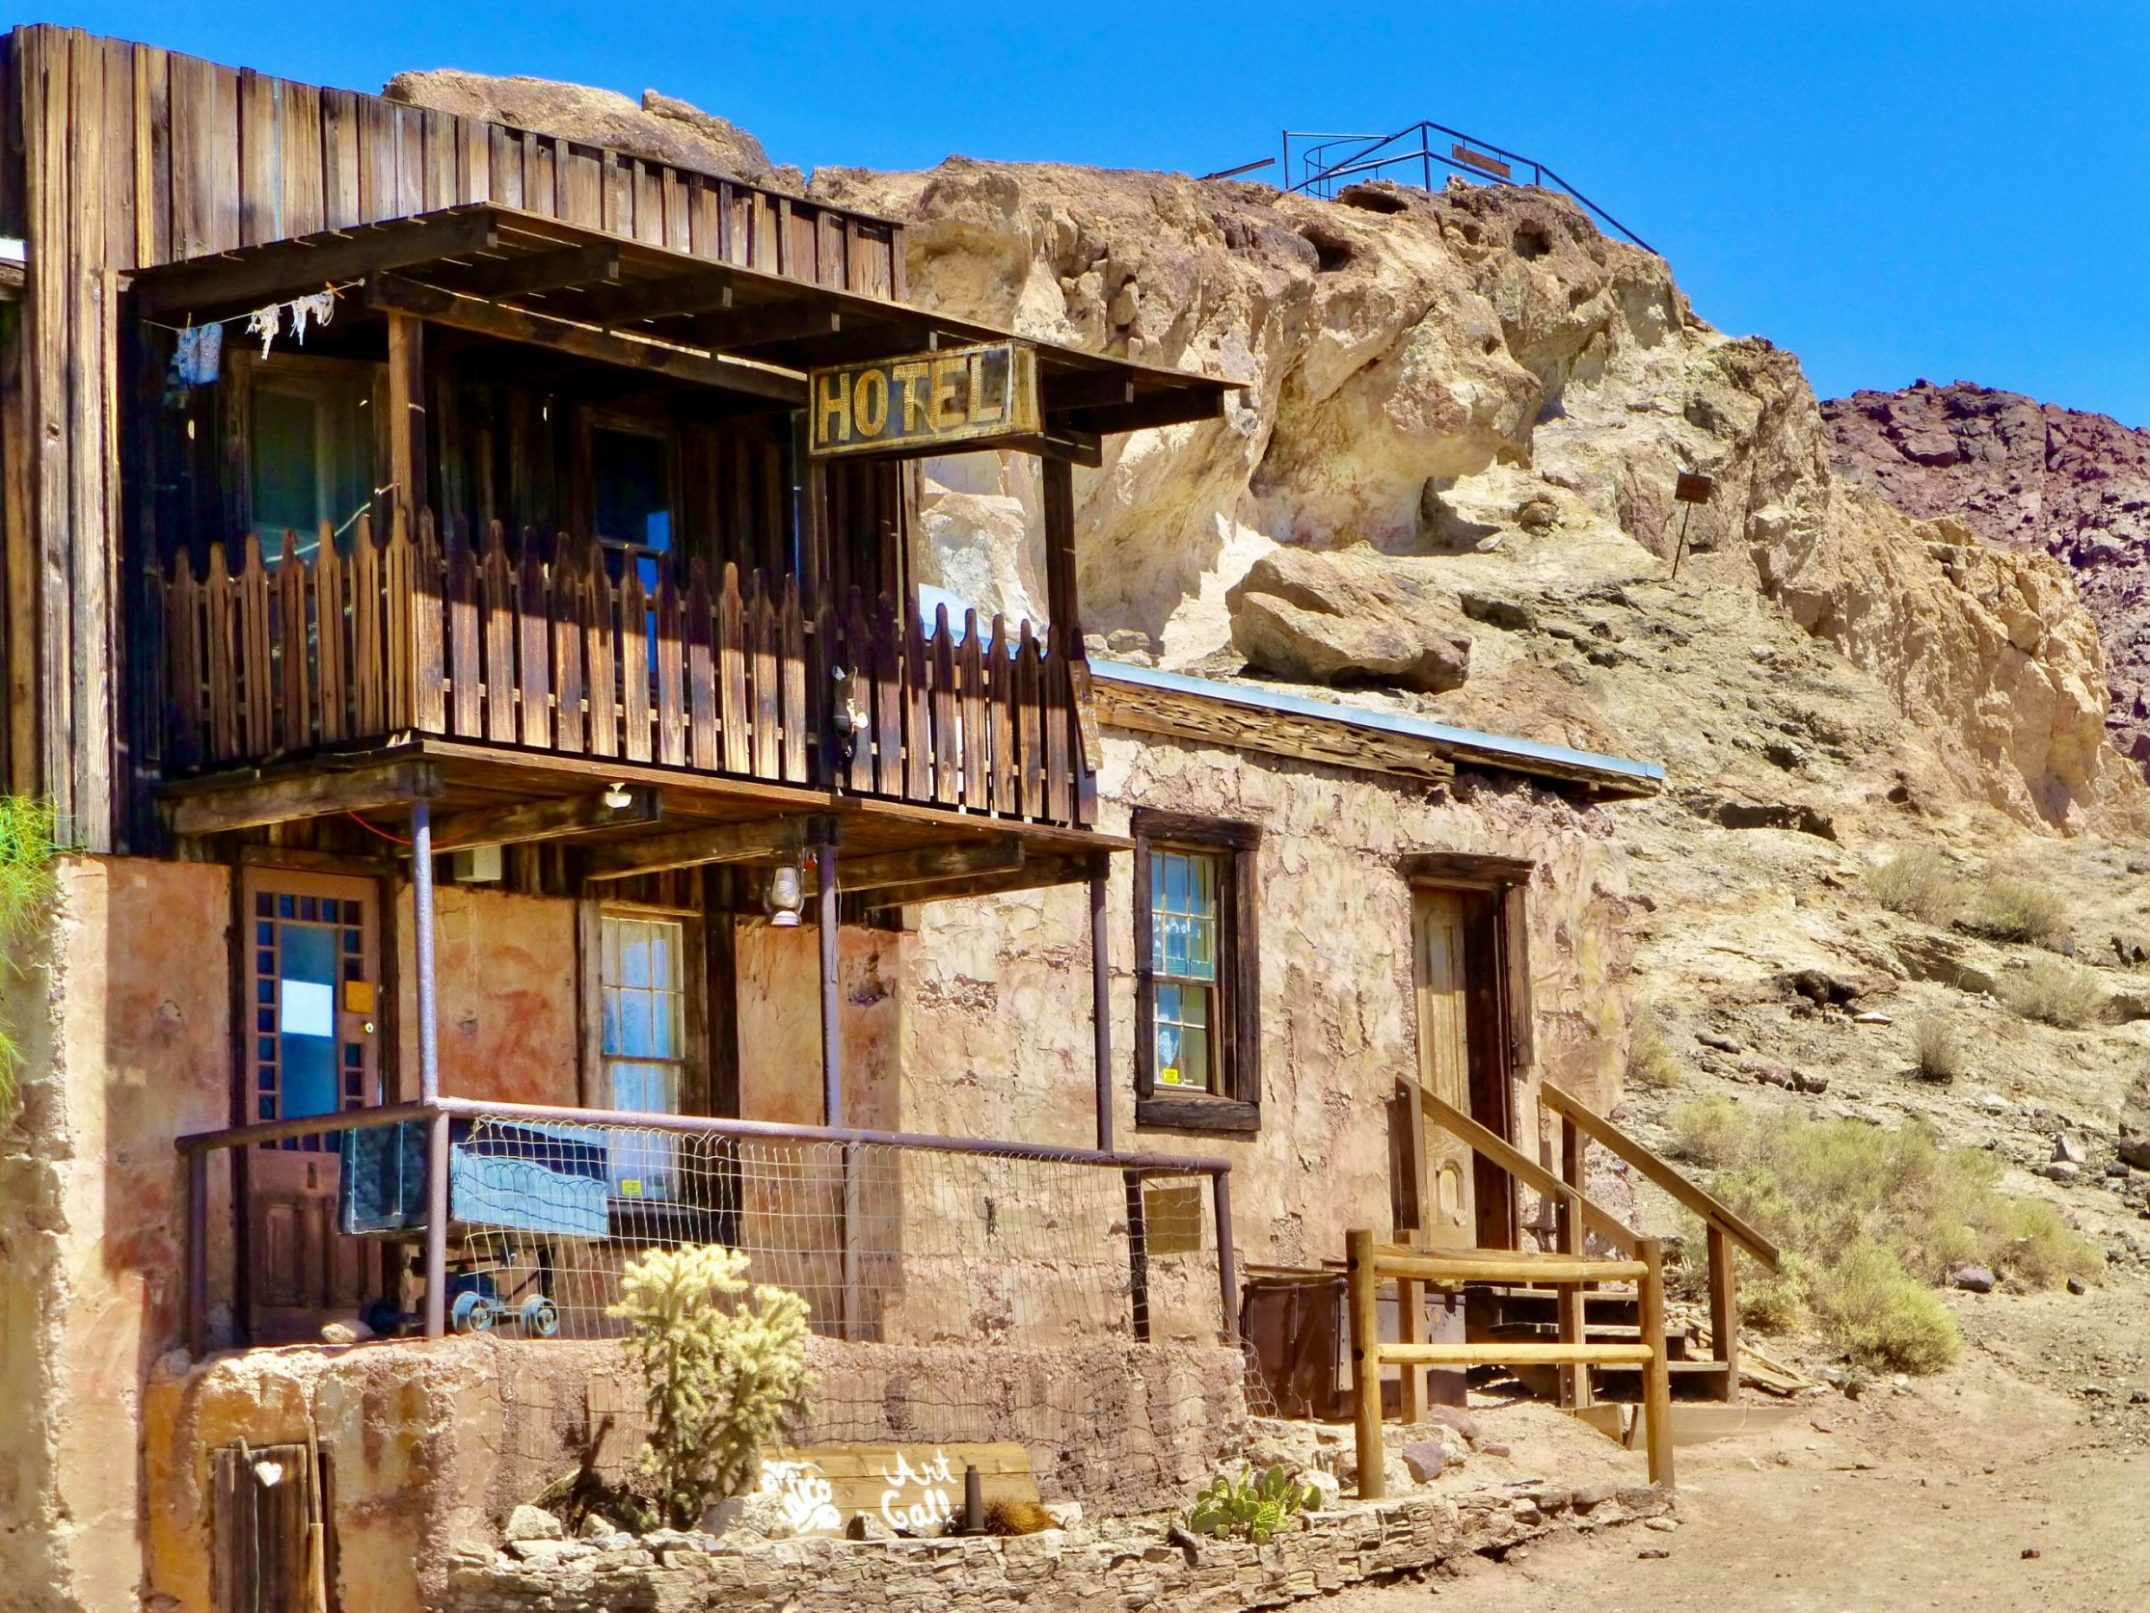 Il far west rivive a Calico, Ghost Town della California